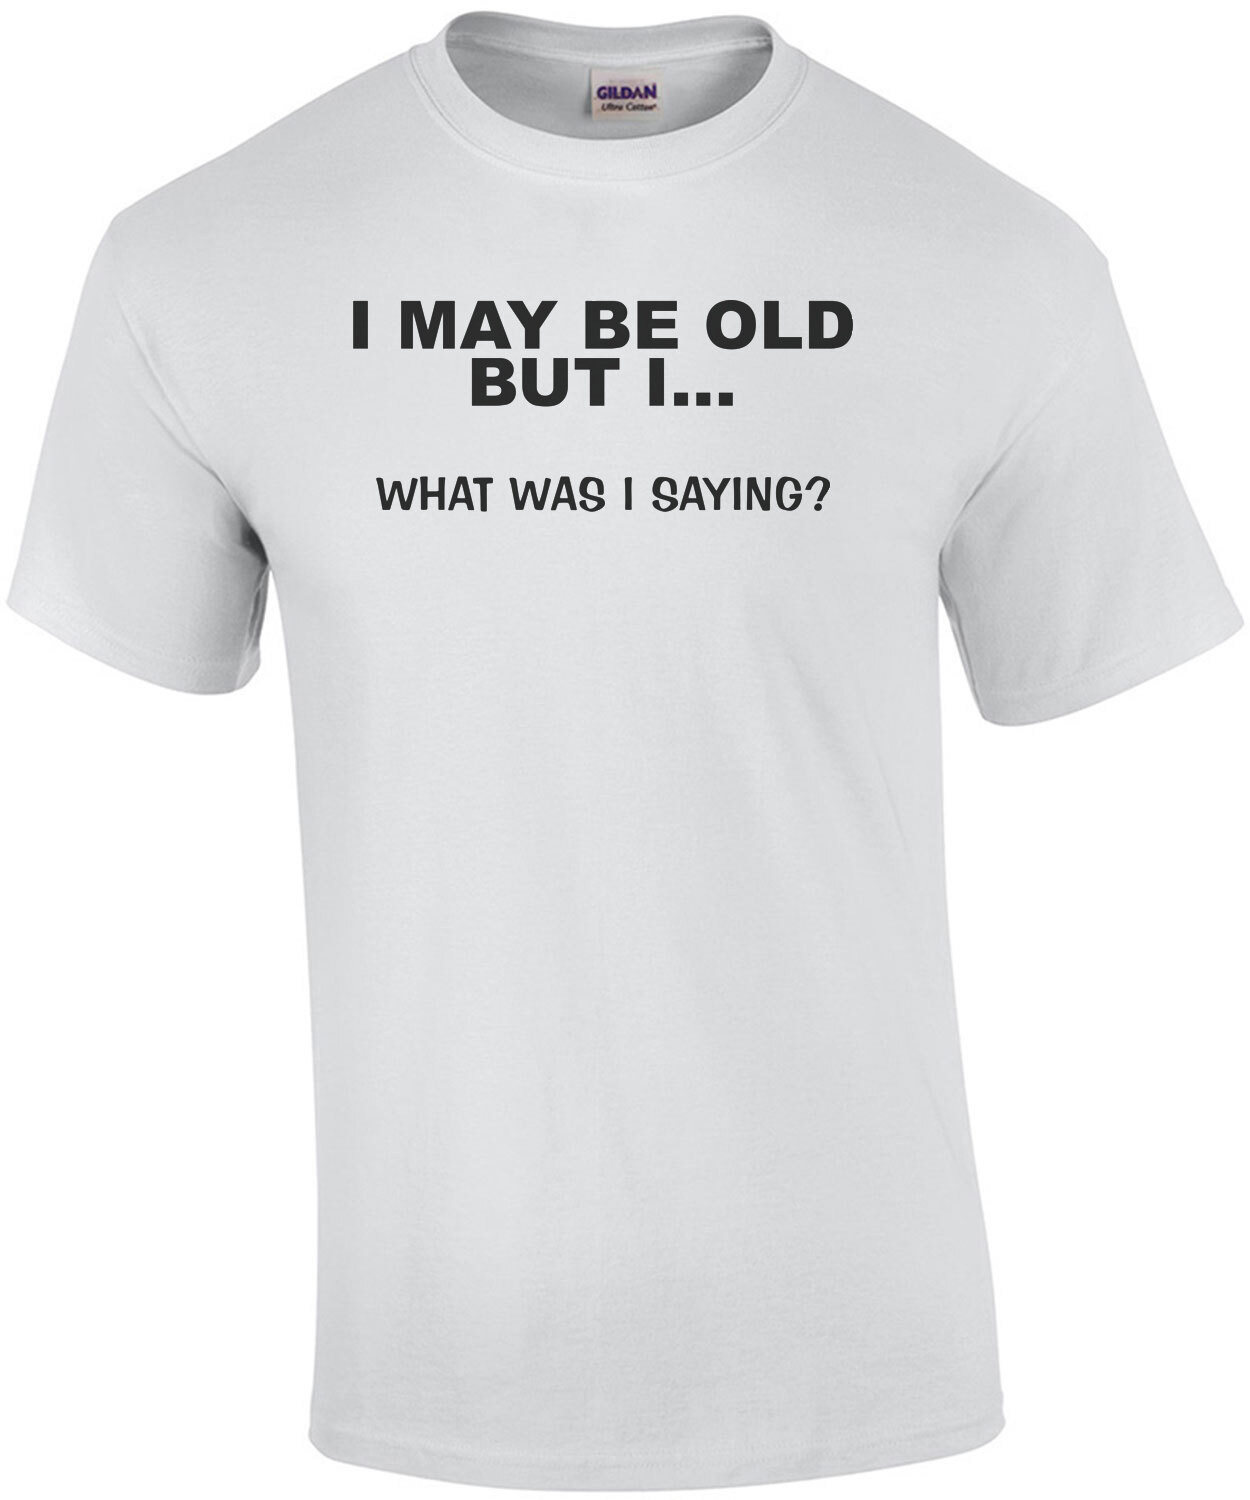 I May Be Old But I... What Was I Saying? T-Shirt